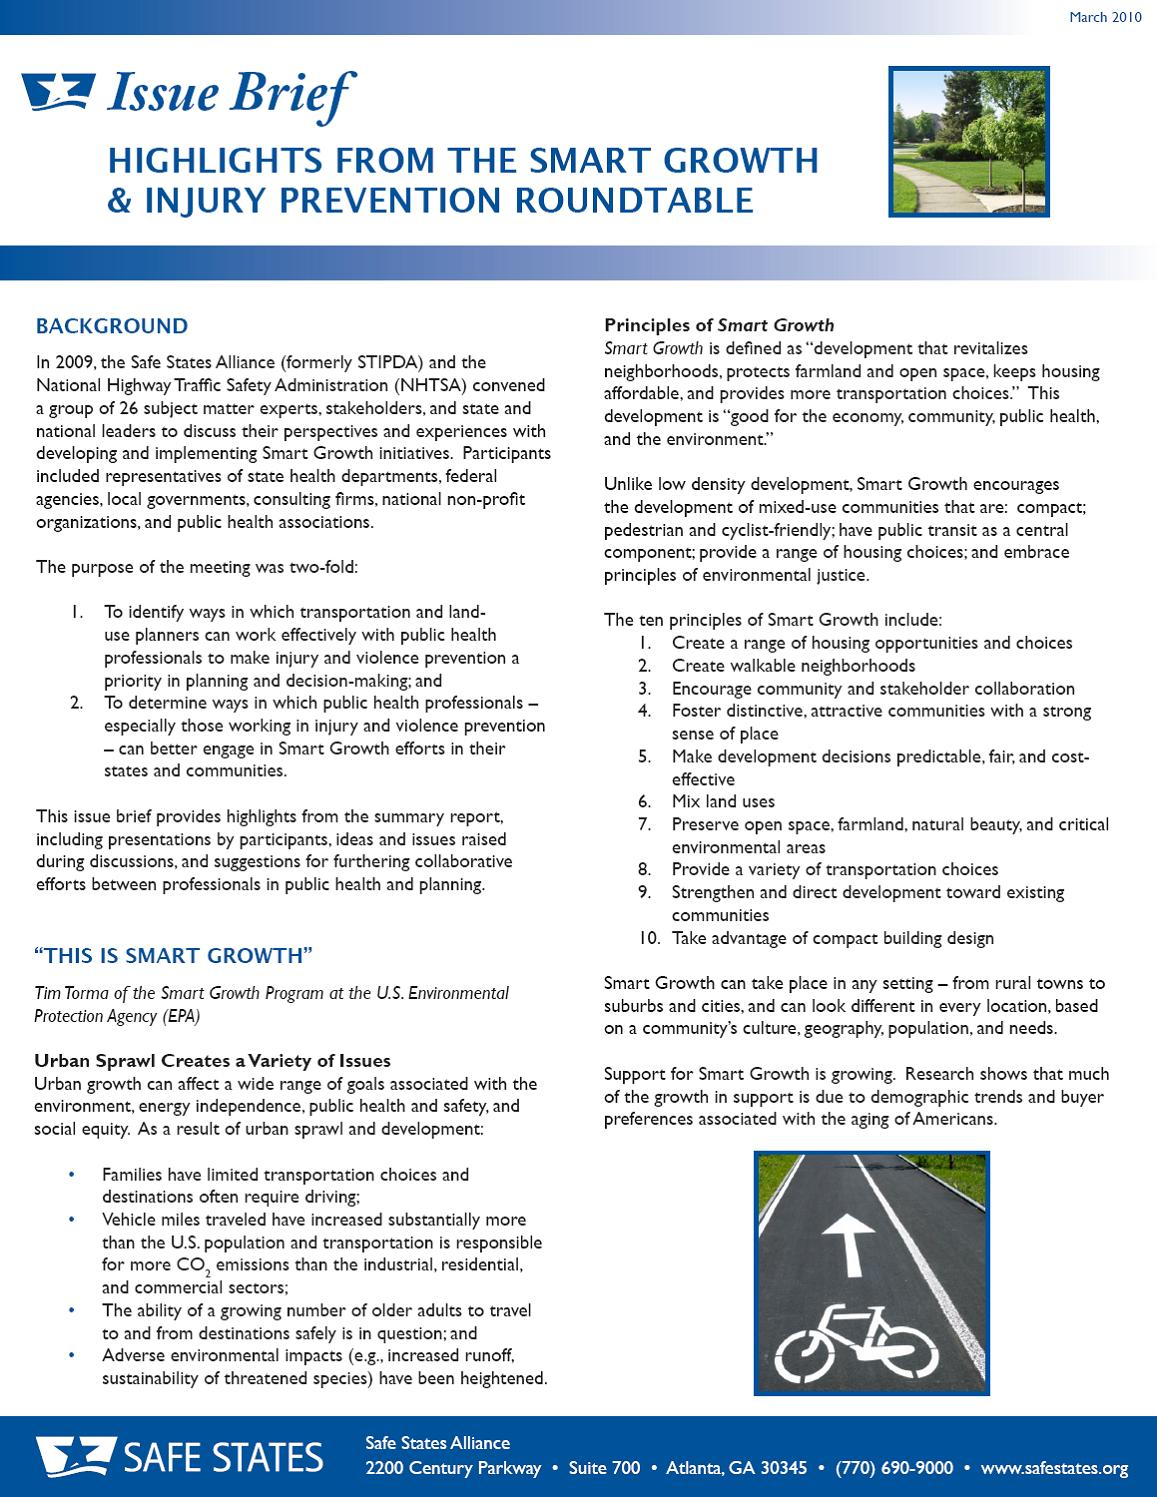 Fact sheets issue briefs safe states alliance in july 2009 safe states alliance and the national highway traffic safety administration nhtsa convened a group of twenty six subject matter experts pronofoot35fo Gallery